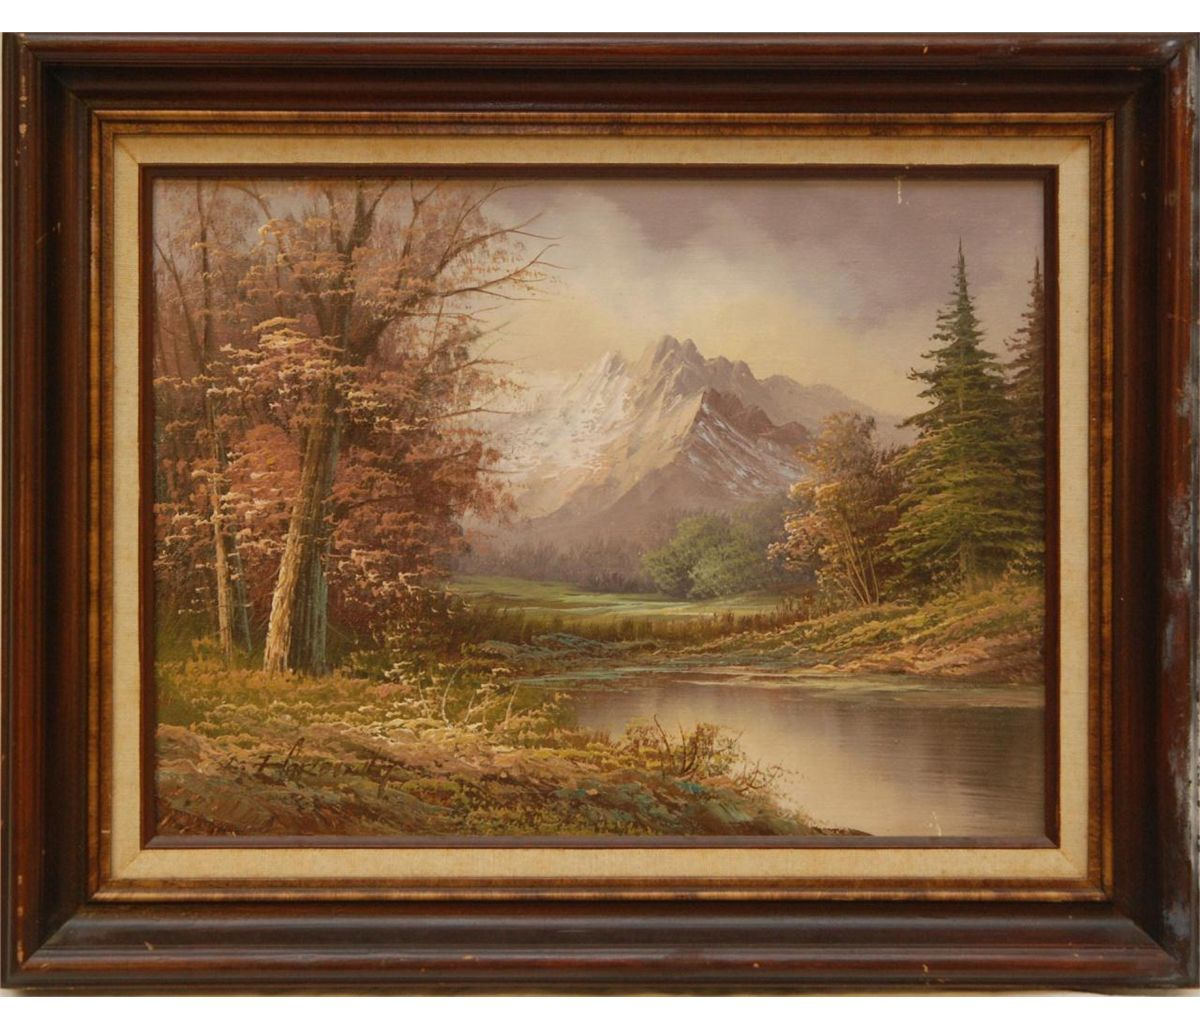 James Harding Landscape Oil Painting On Canvas Large oil painting canvas signed l yunkui land. james harding landscape oil painting on